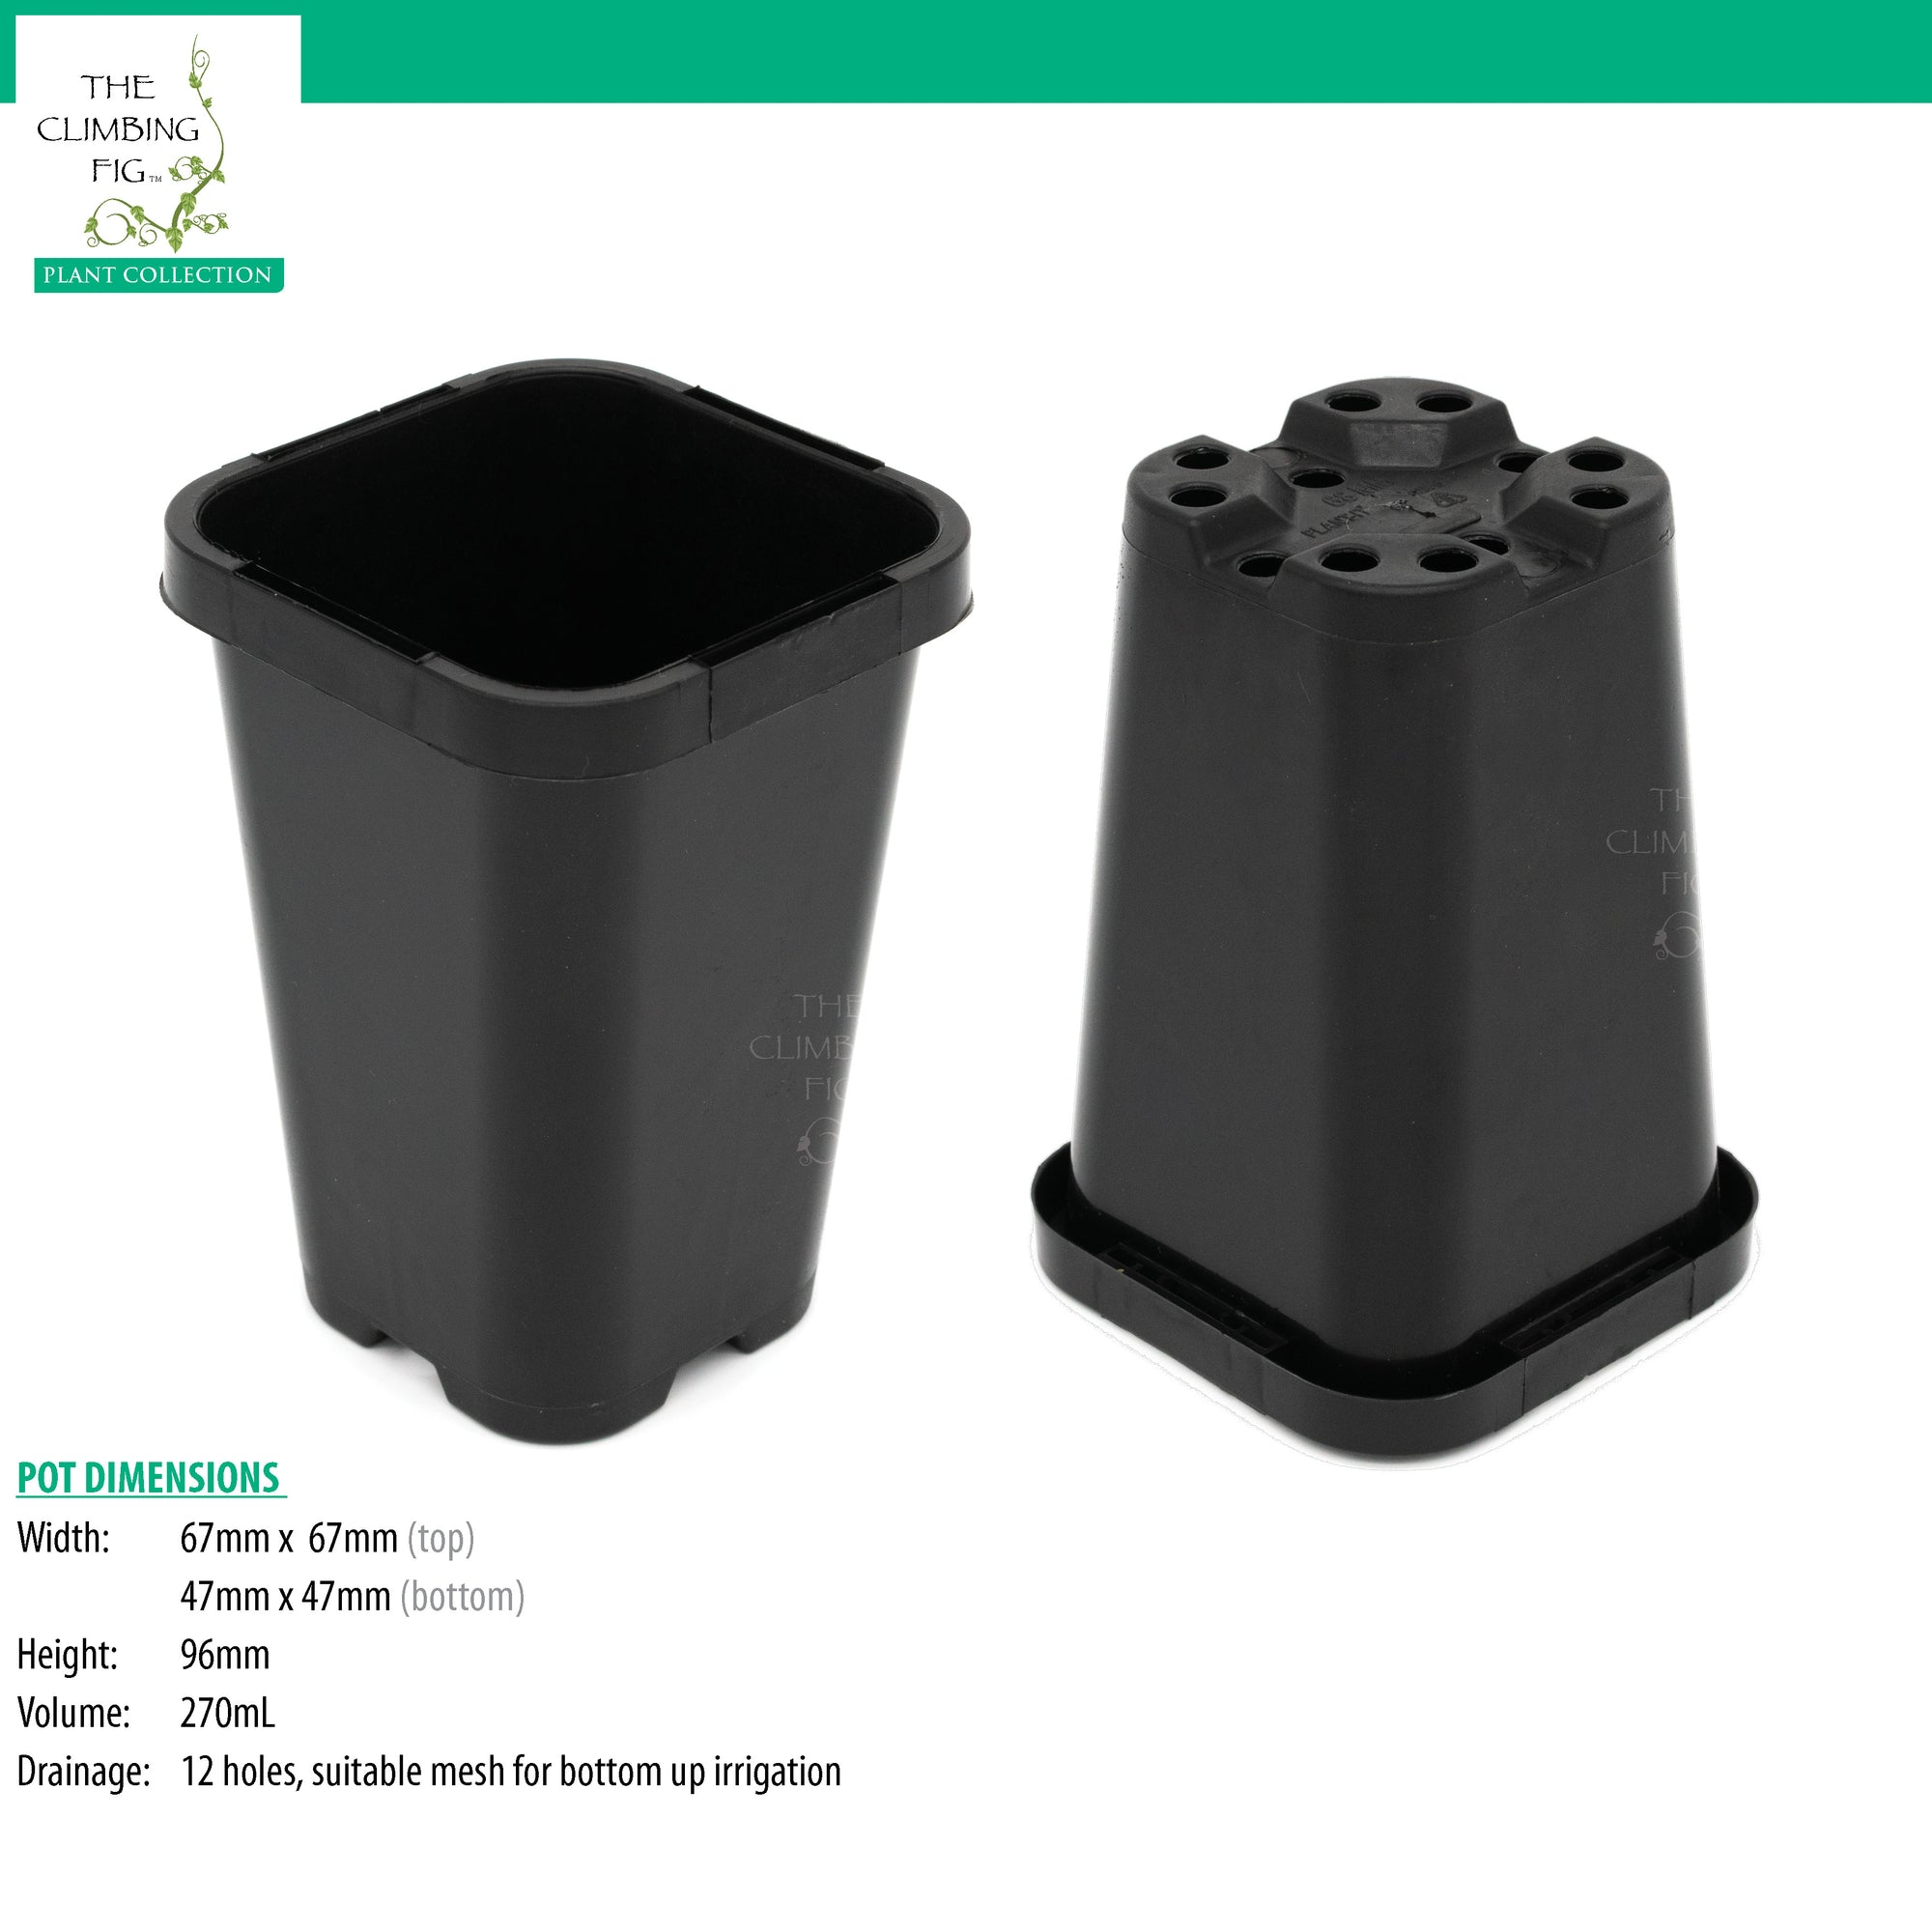 68mm Square Black Plastic Tube Pots